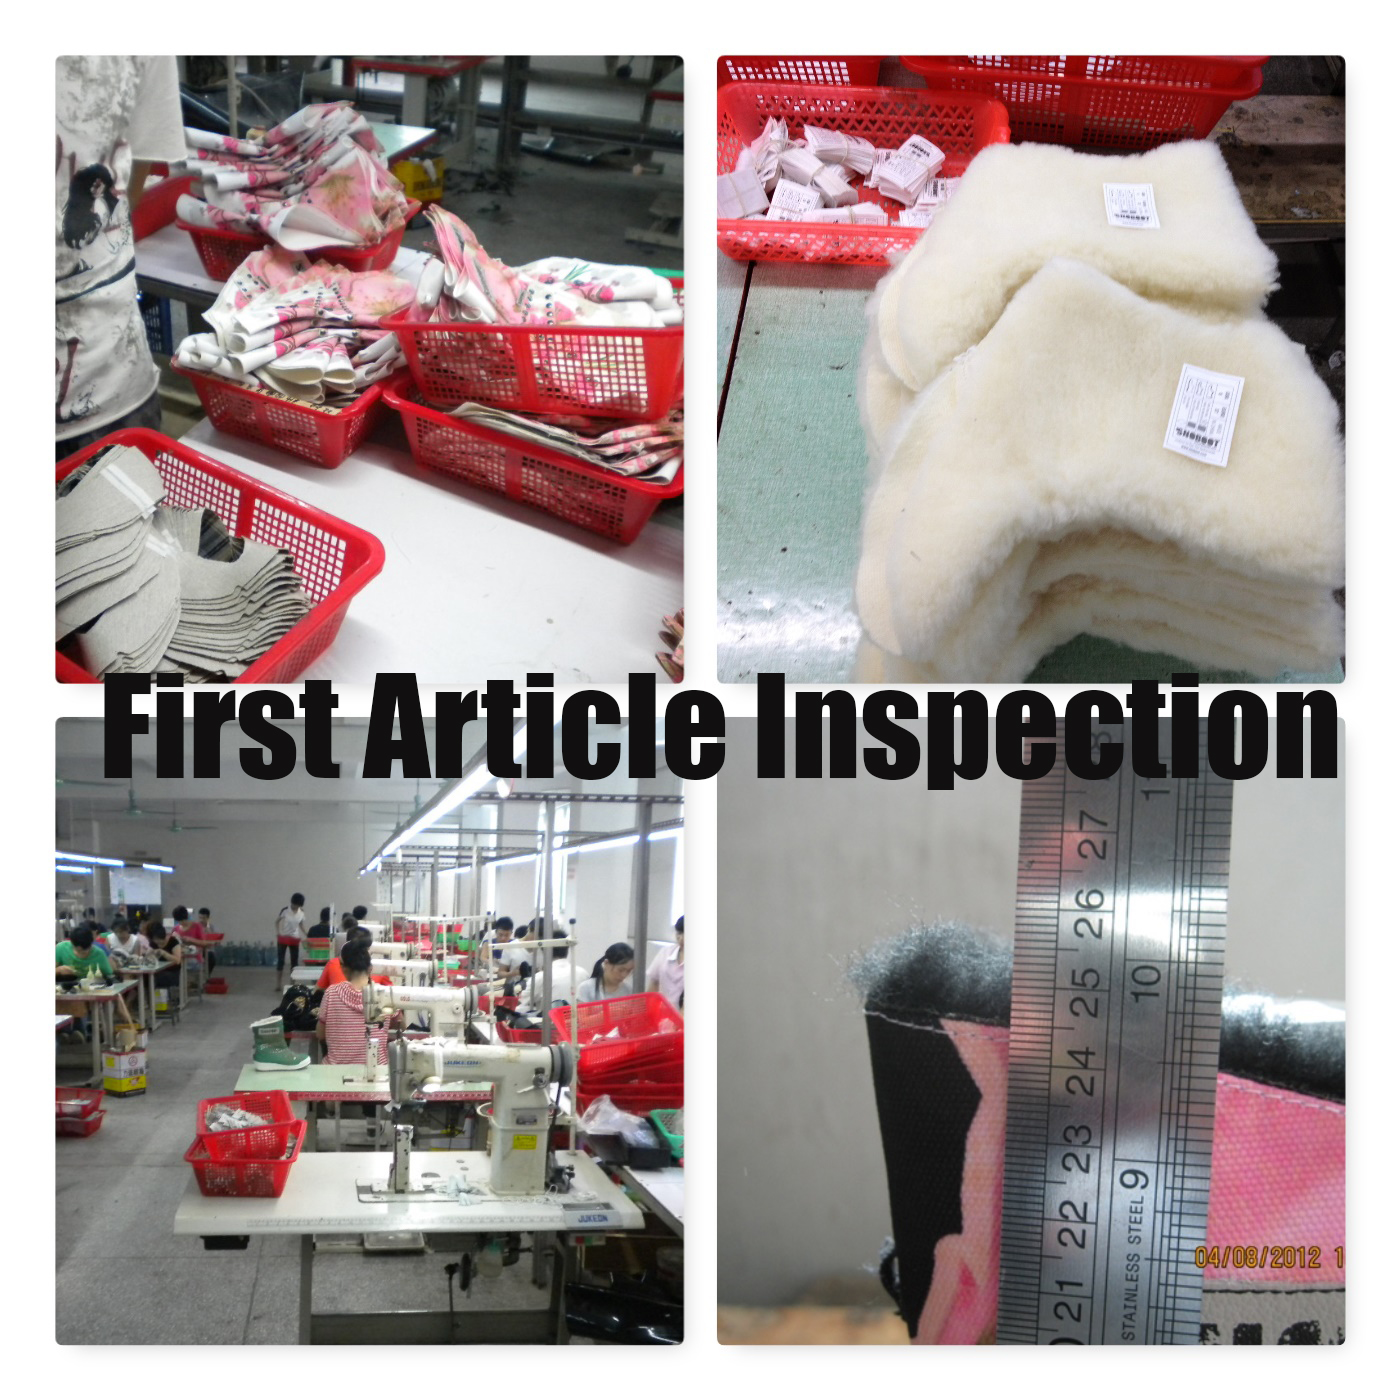 First Article Inspection